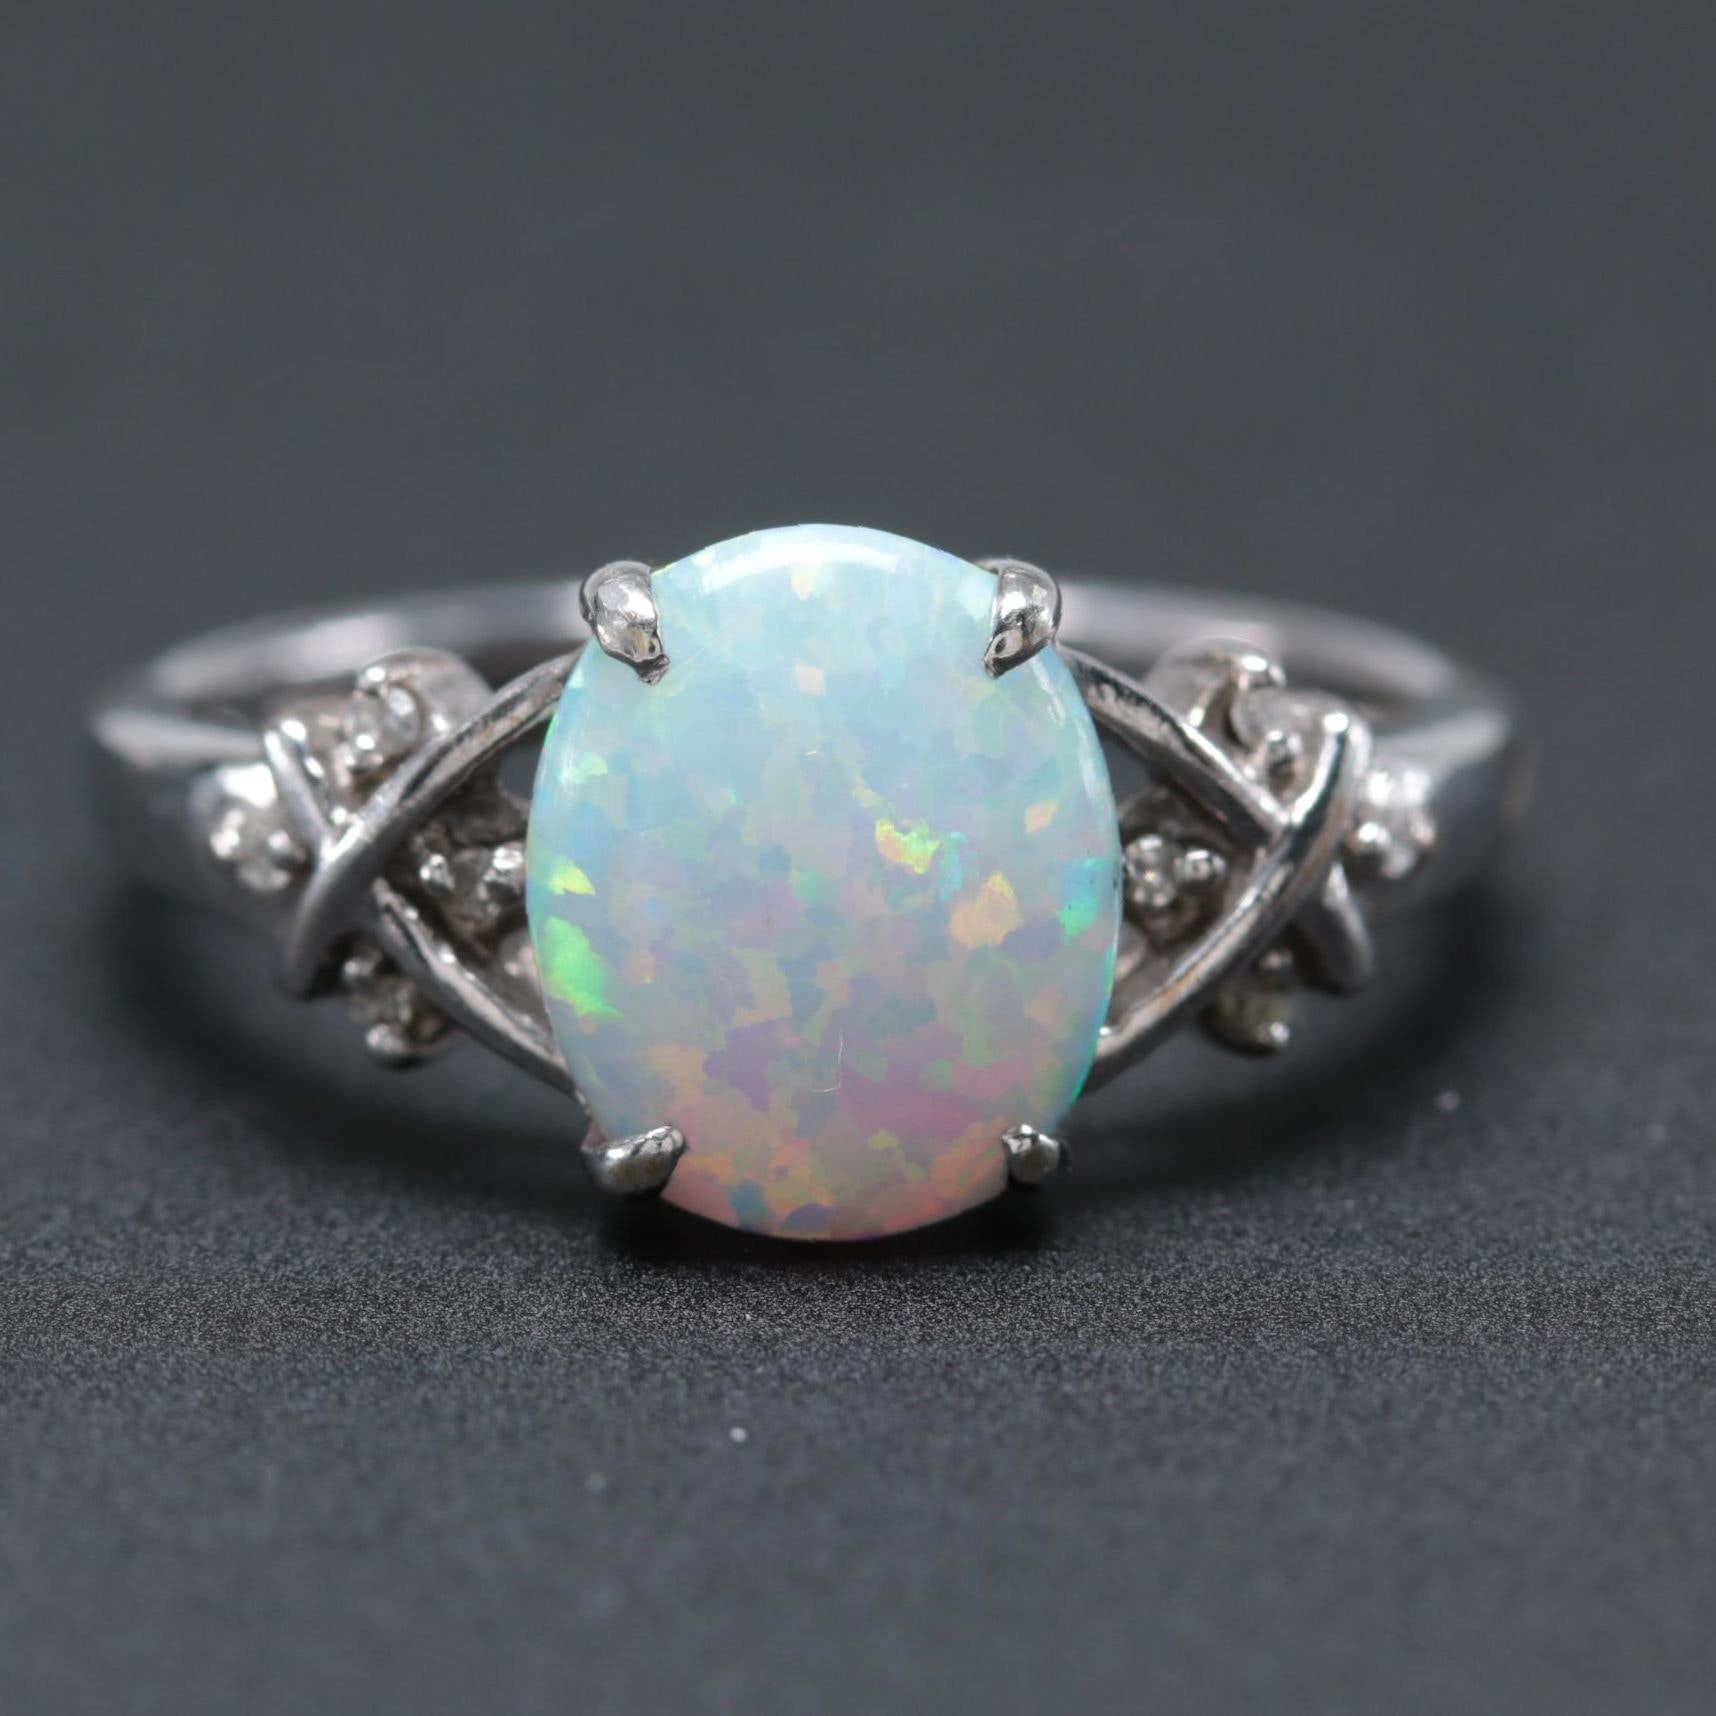 10K White Gold Synthetic Opal and Diamond Ring